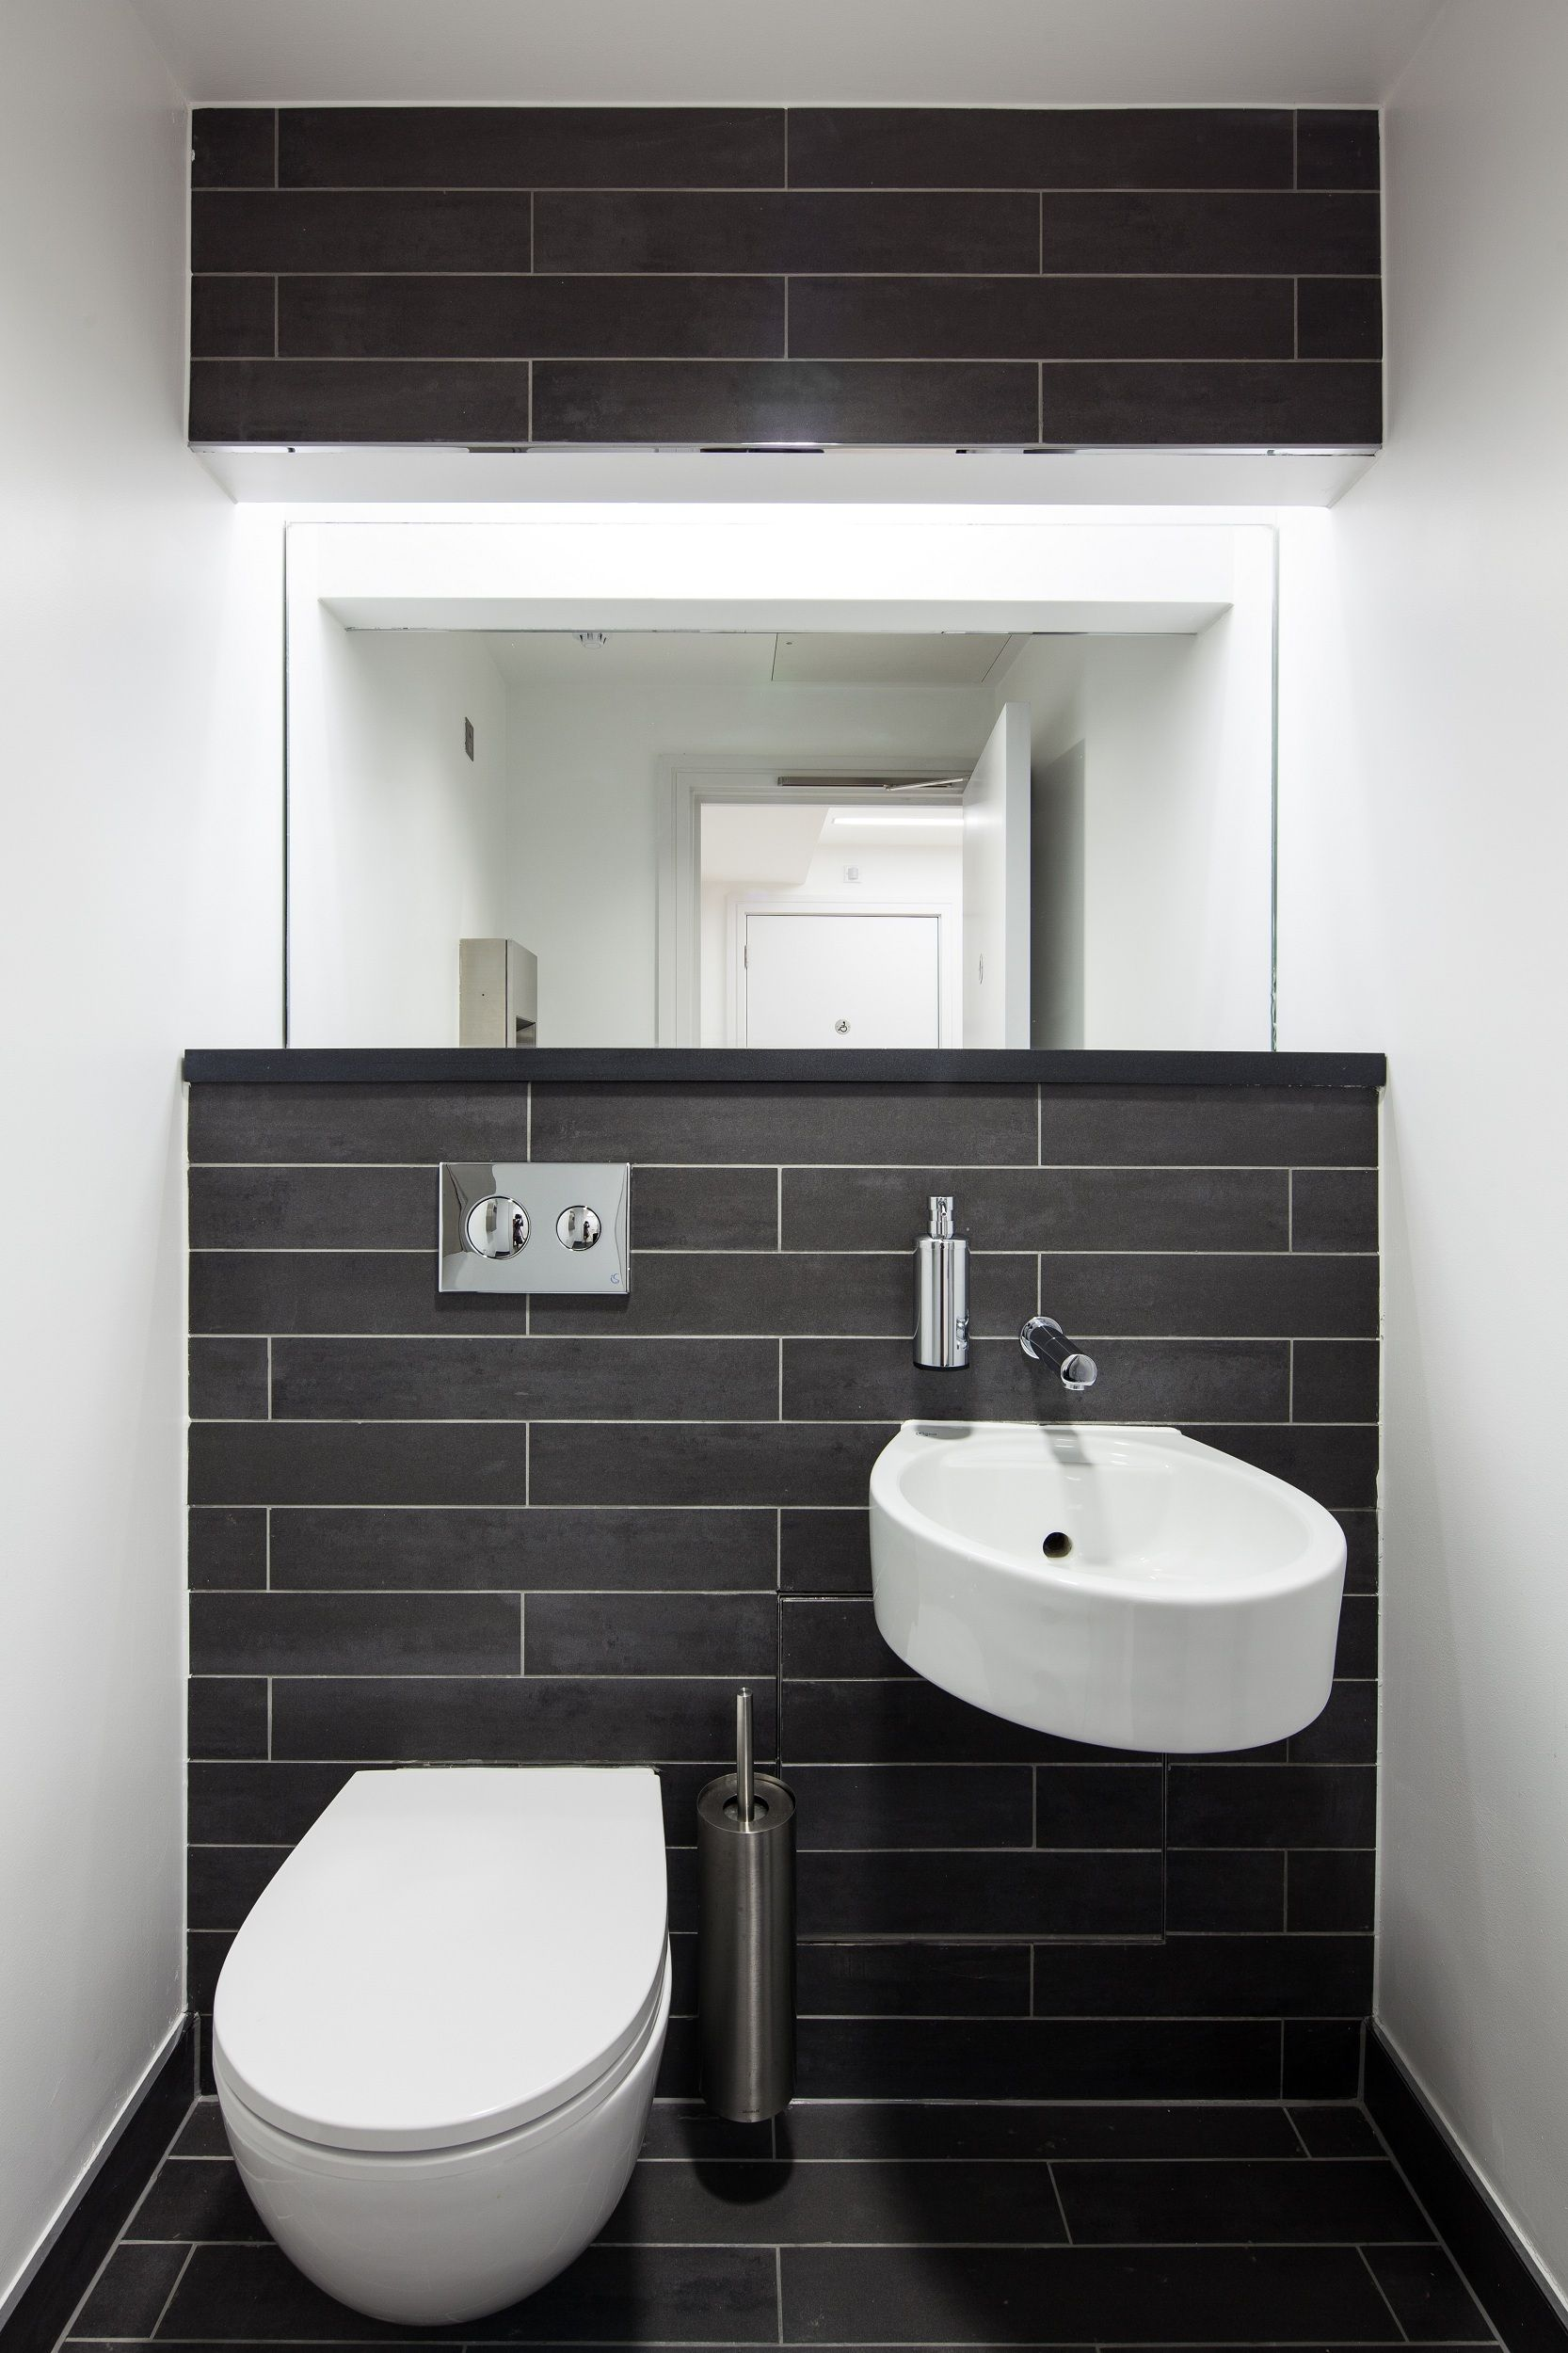 Office Restroom - Slingsby Place | Office bathroom design ...